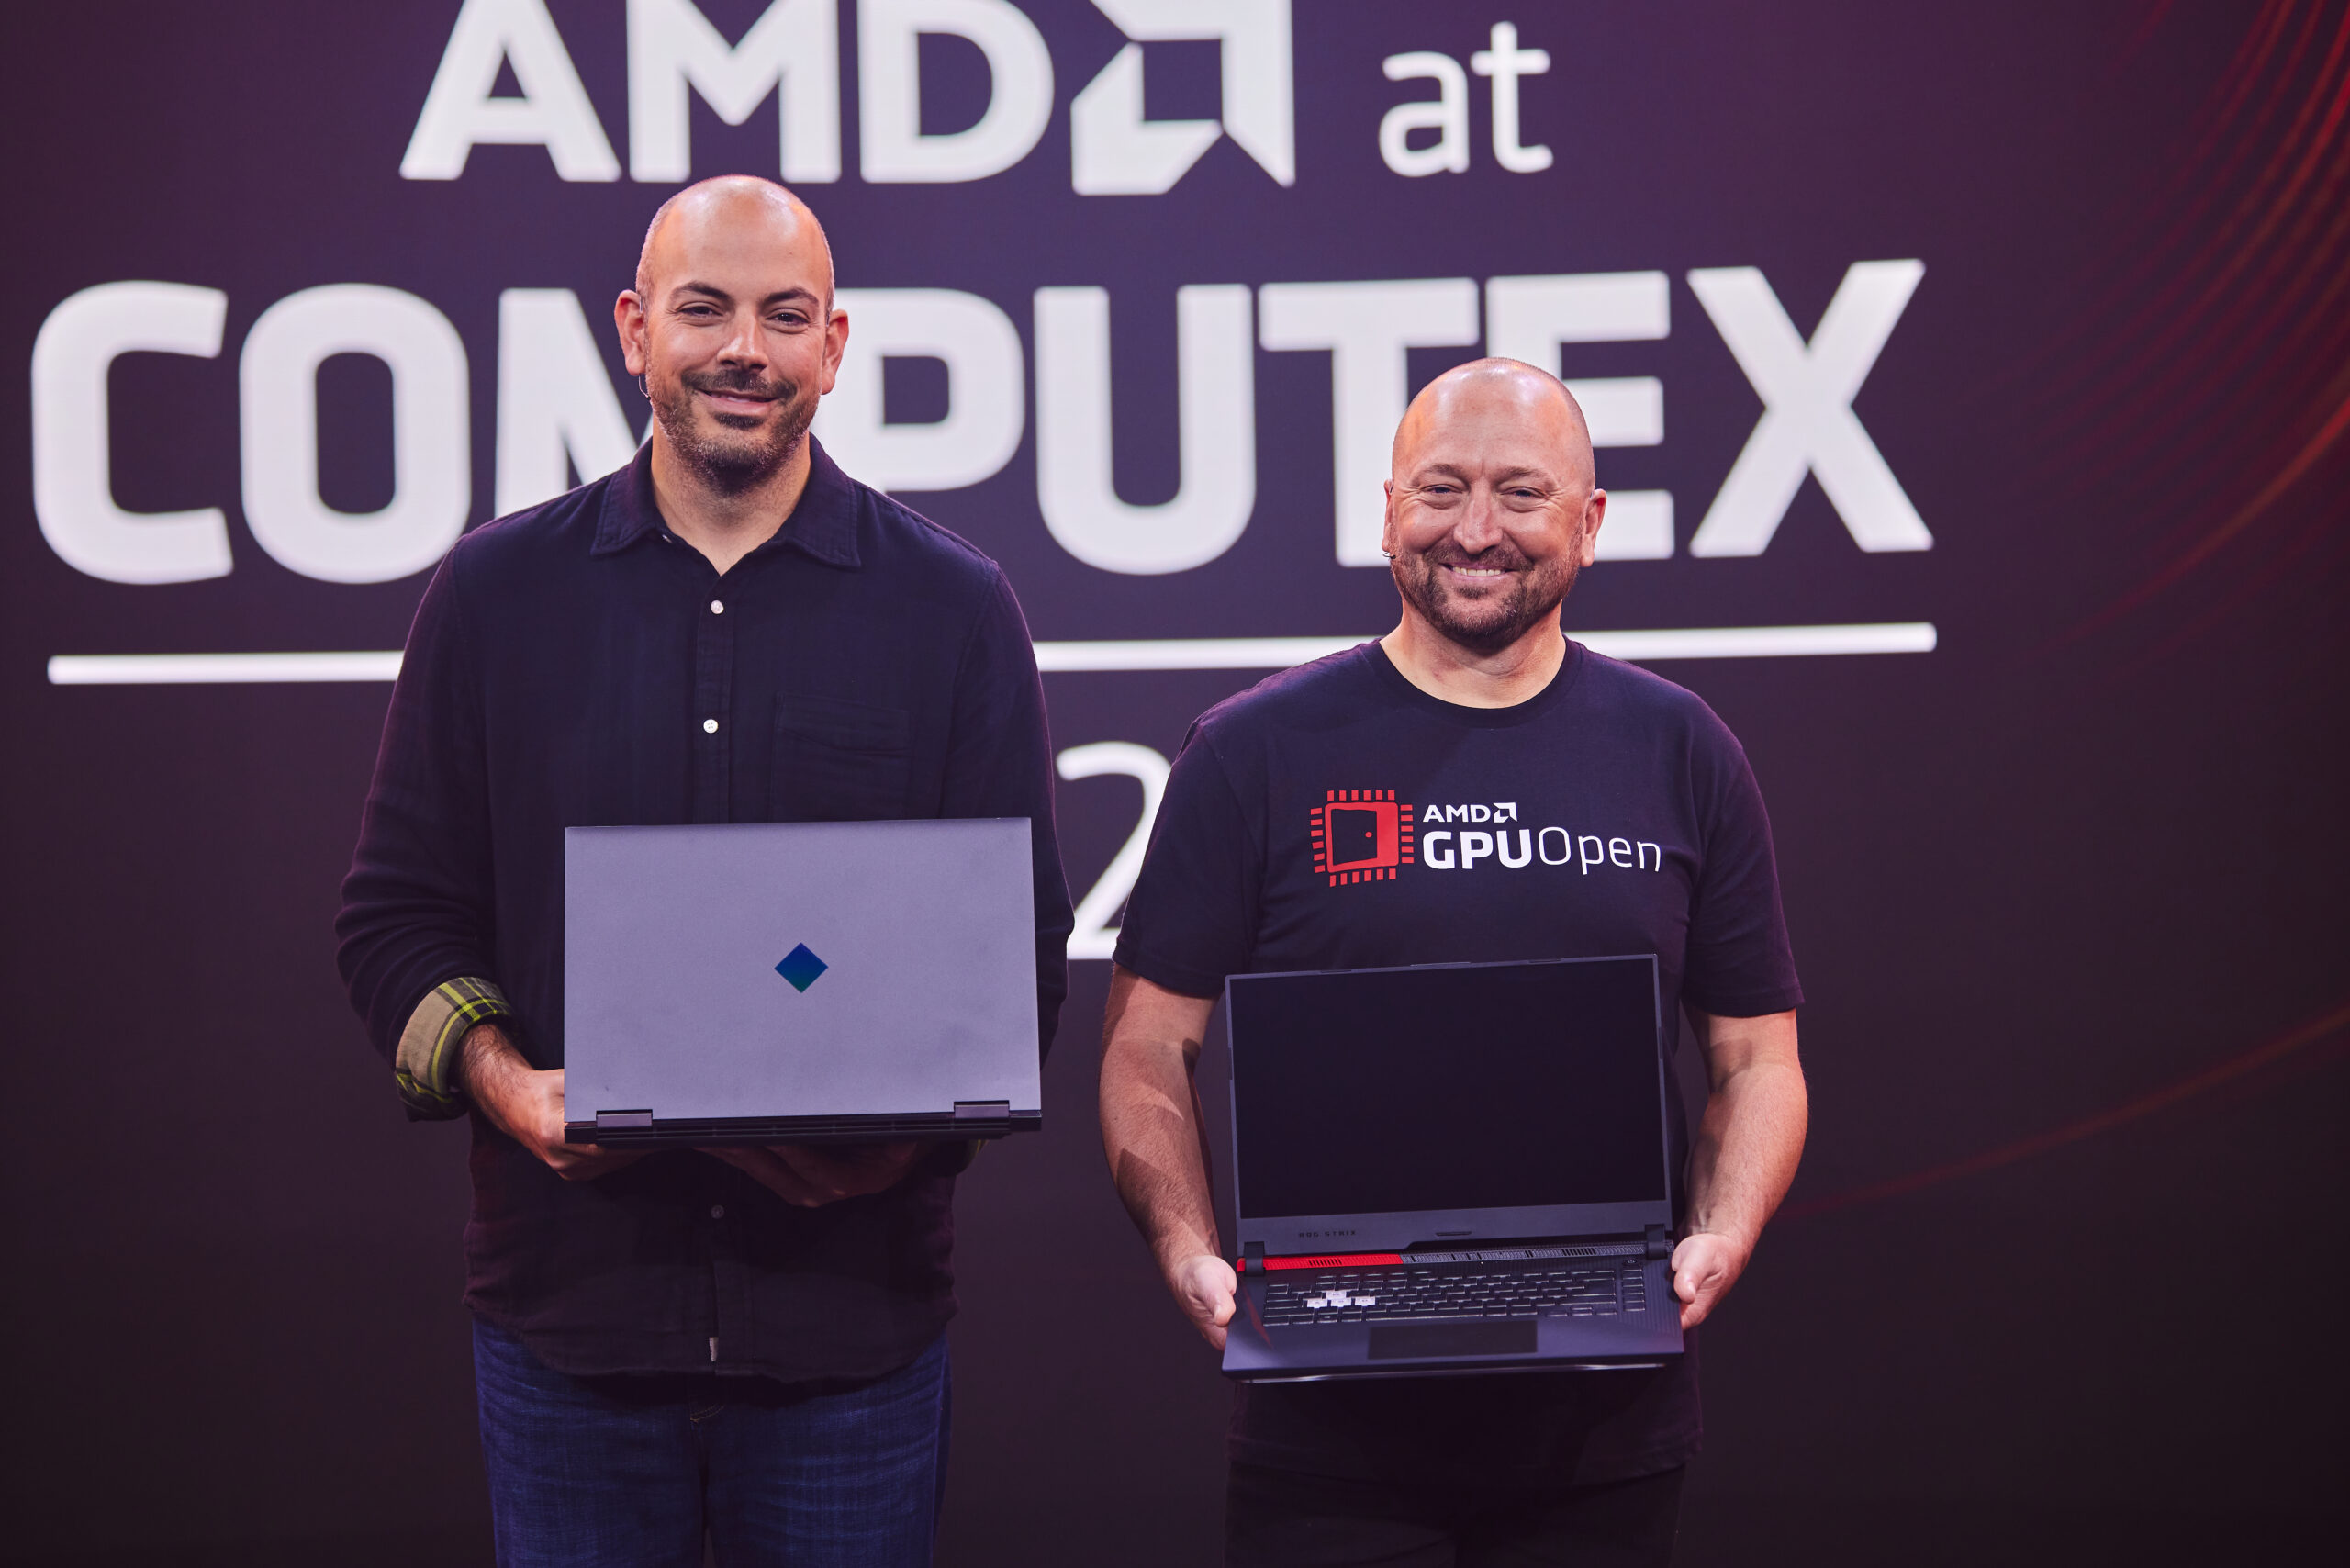 AMD showcases Industry-Leading Innovation Across the High-Performance Computing Ecosystem at COMPUTEX 2021 23